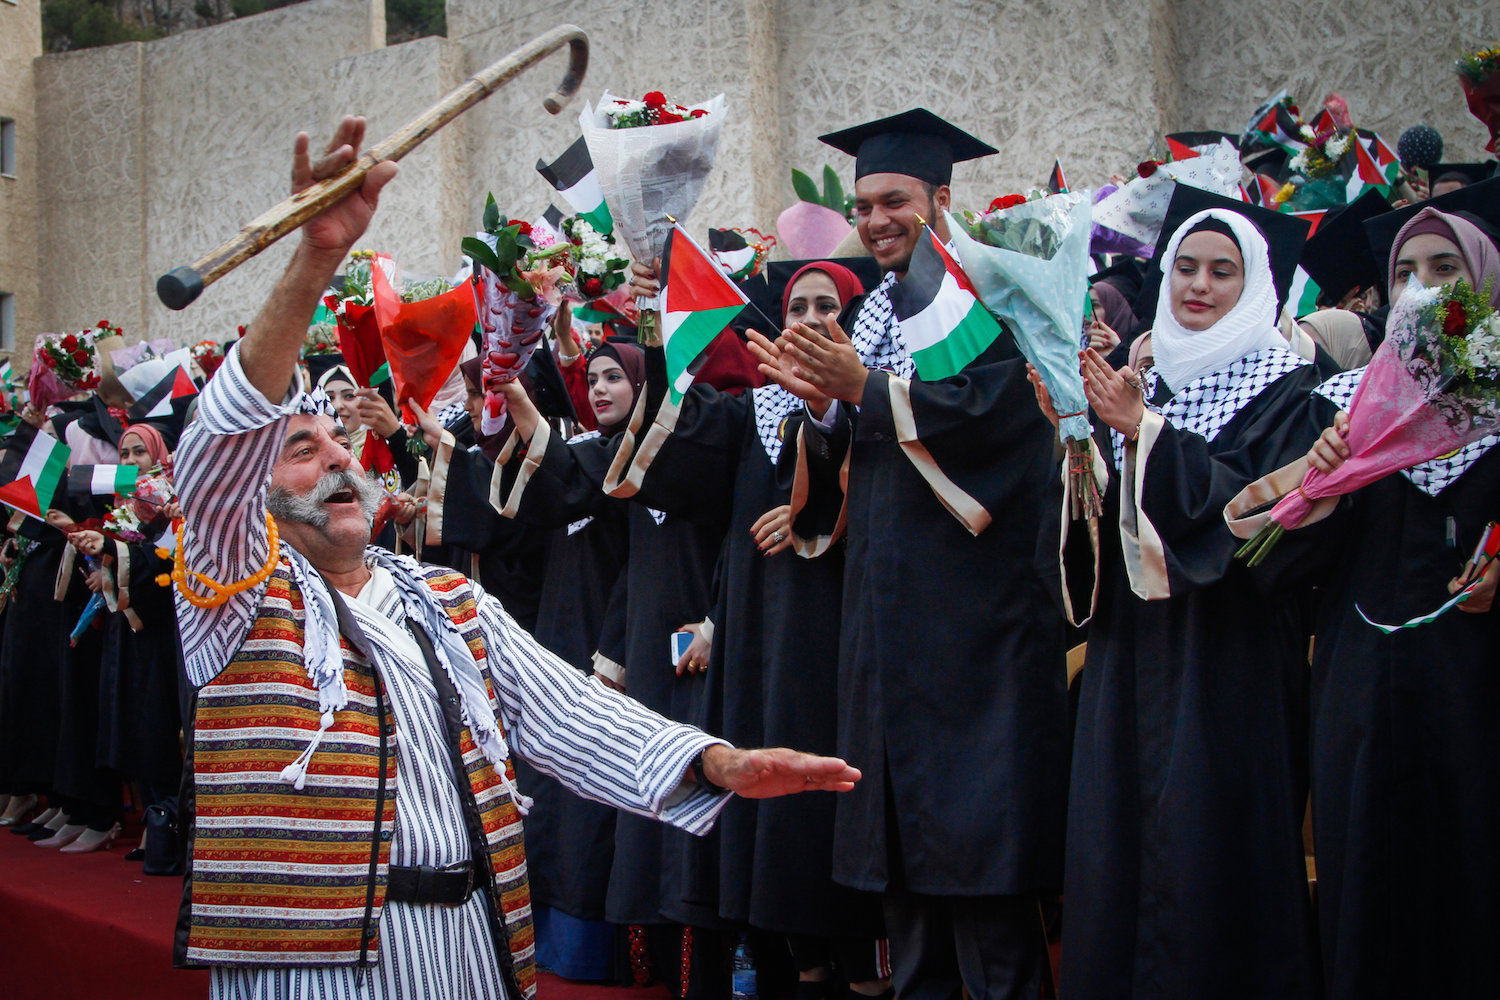 Palestinian students during their graduation ceremony at Al-Quds Open University in the West Bank city of Nablus, July 28, 2018. (Nasser Ishtayeh/Flash90)